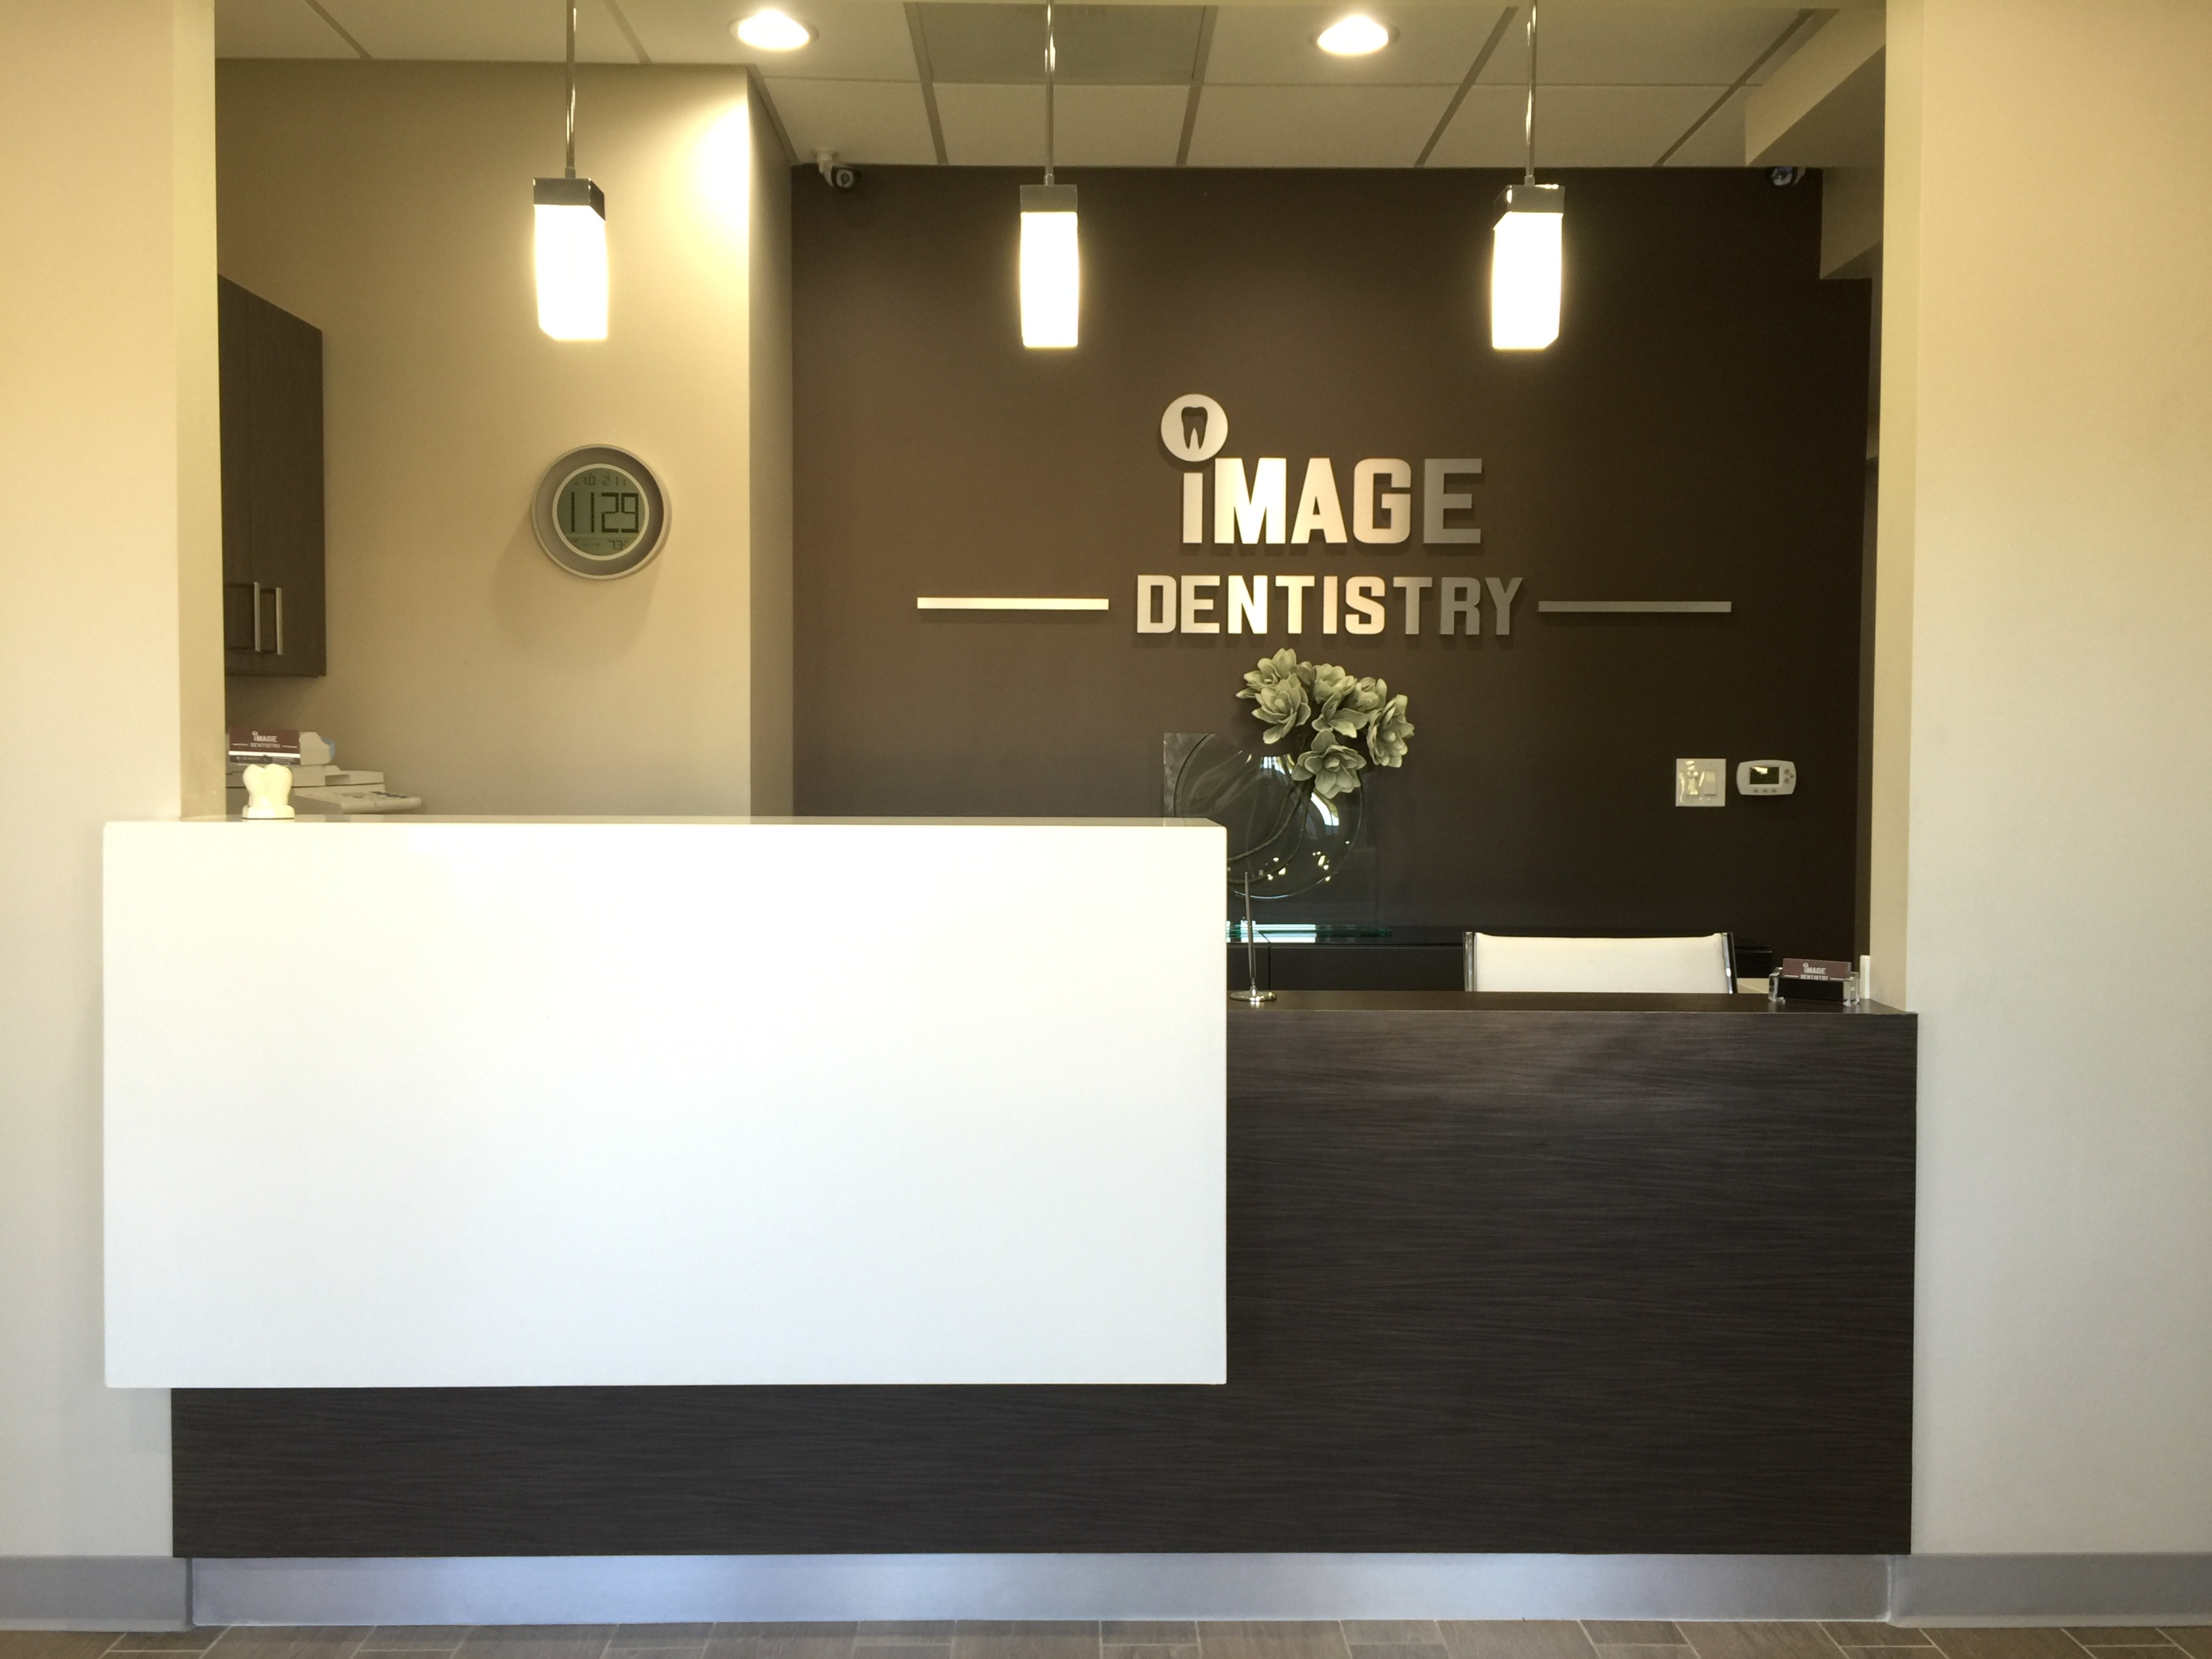 Image Dentistry - Reception